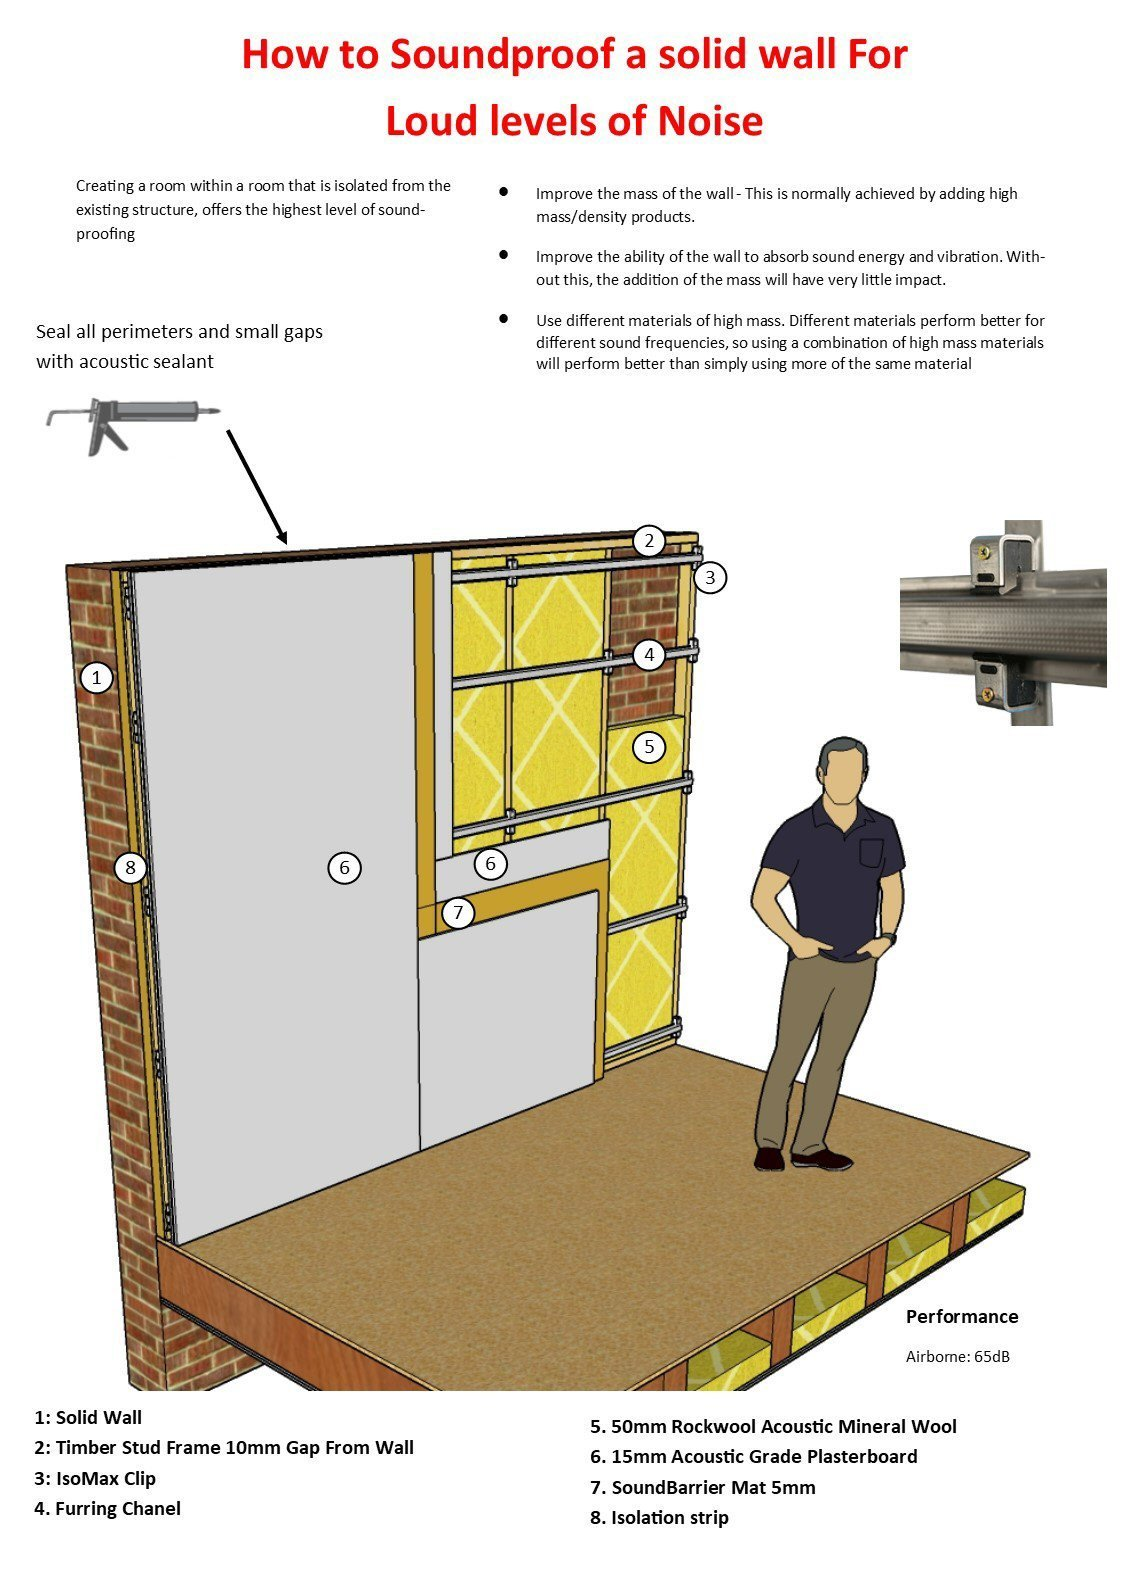 bradford acoustic insulation design guide